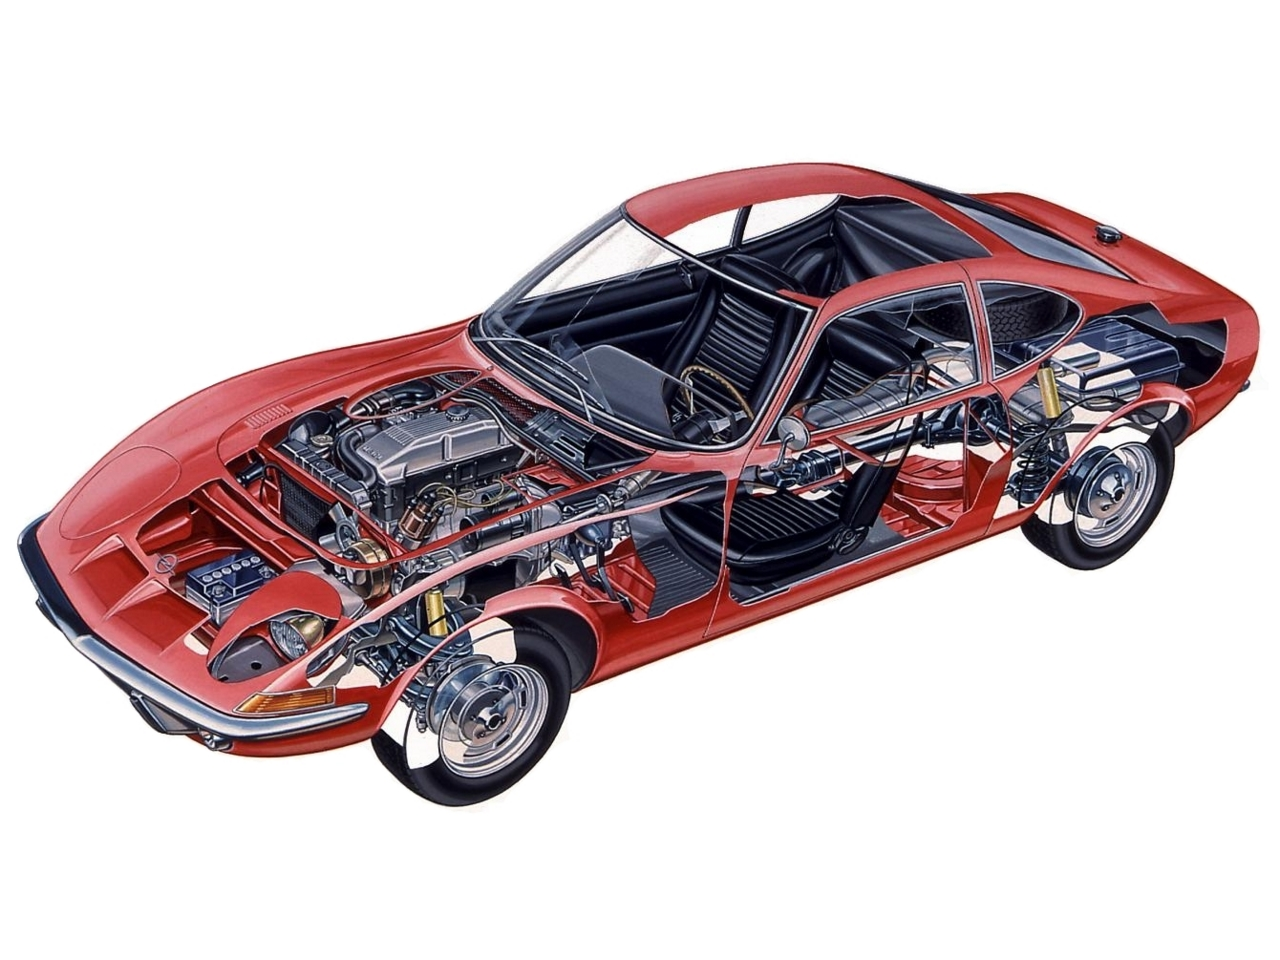 Opel Gt Cutaway together with  besides Volvo Pic also Dsc as well Volvo P With Overdrive Lgw. on 1970 volvo p1800 coupe